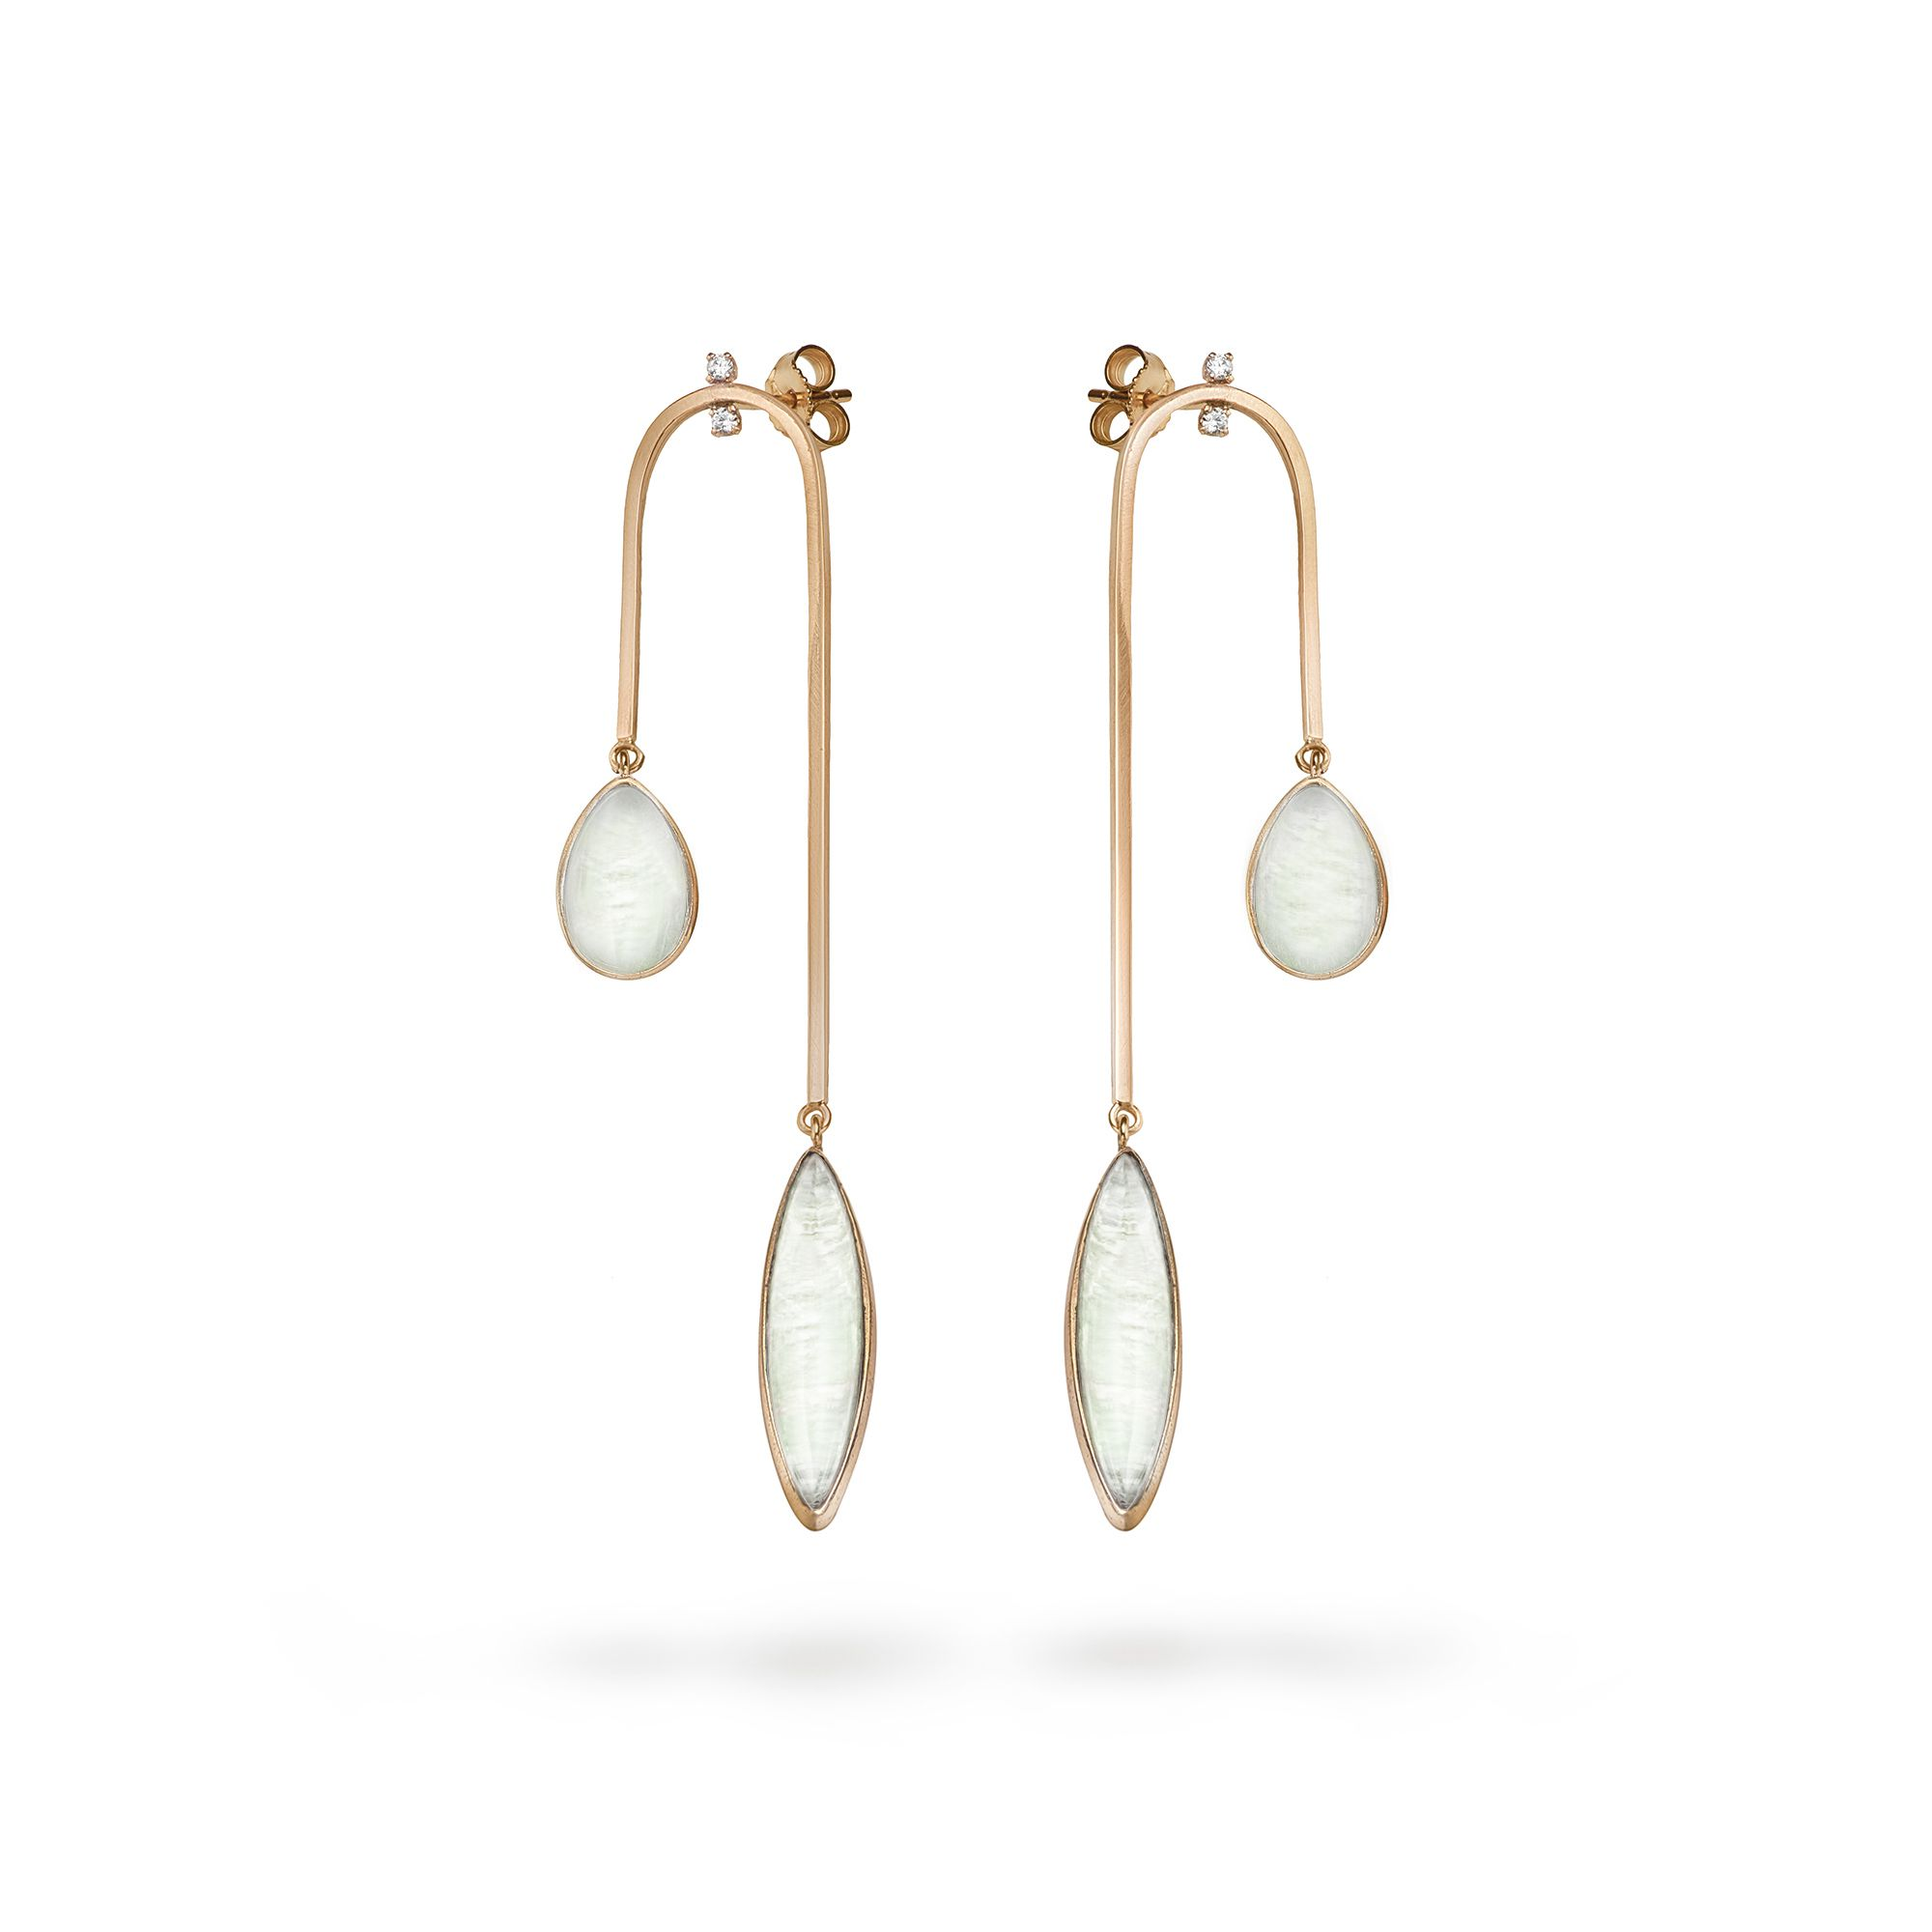 Curved 'Amo' earrings Rose gold earrings with diamonds and green agate